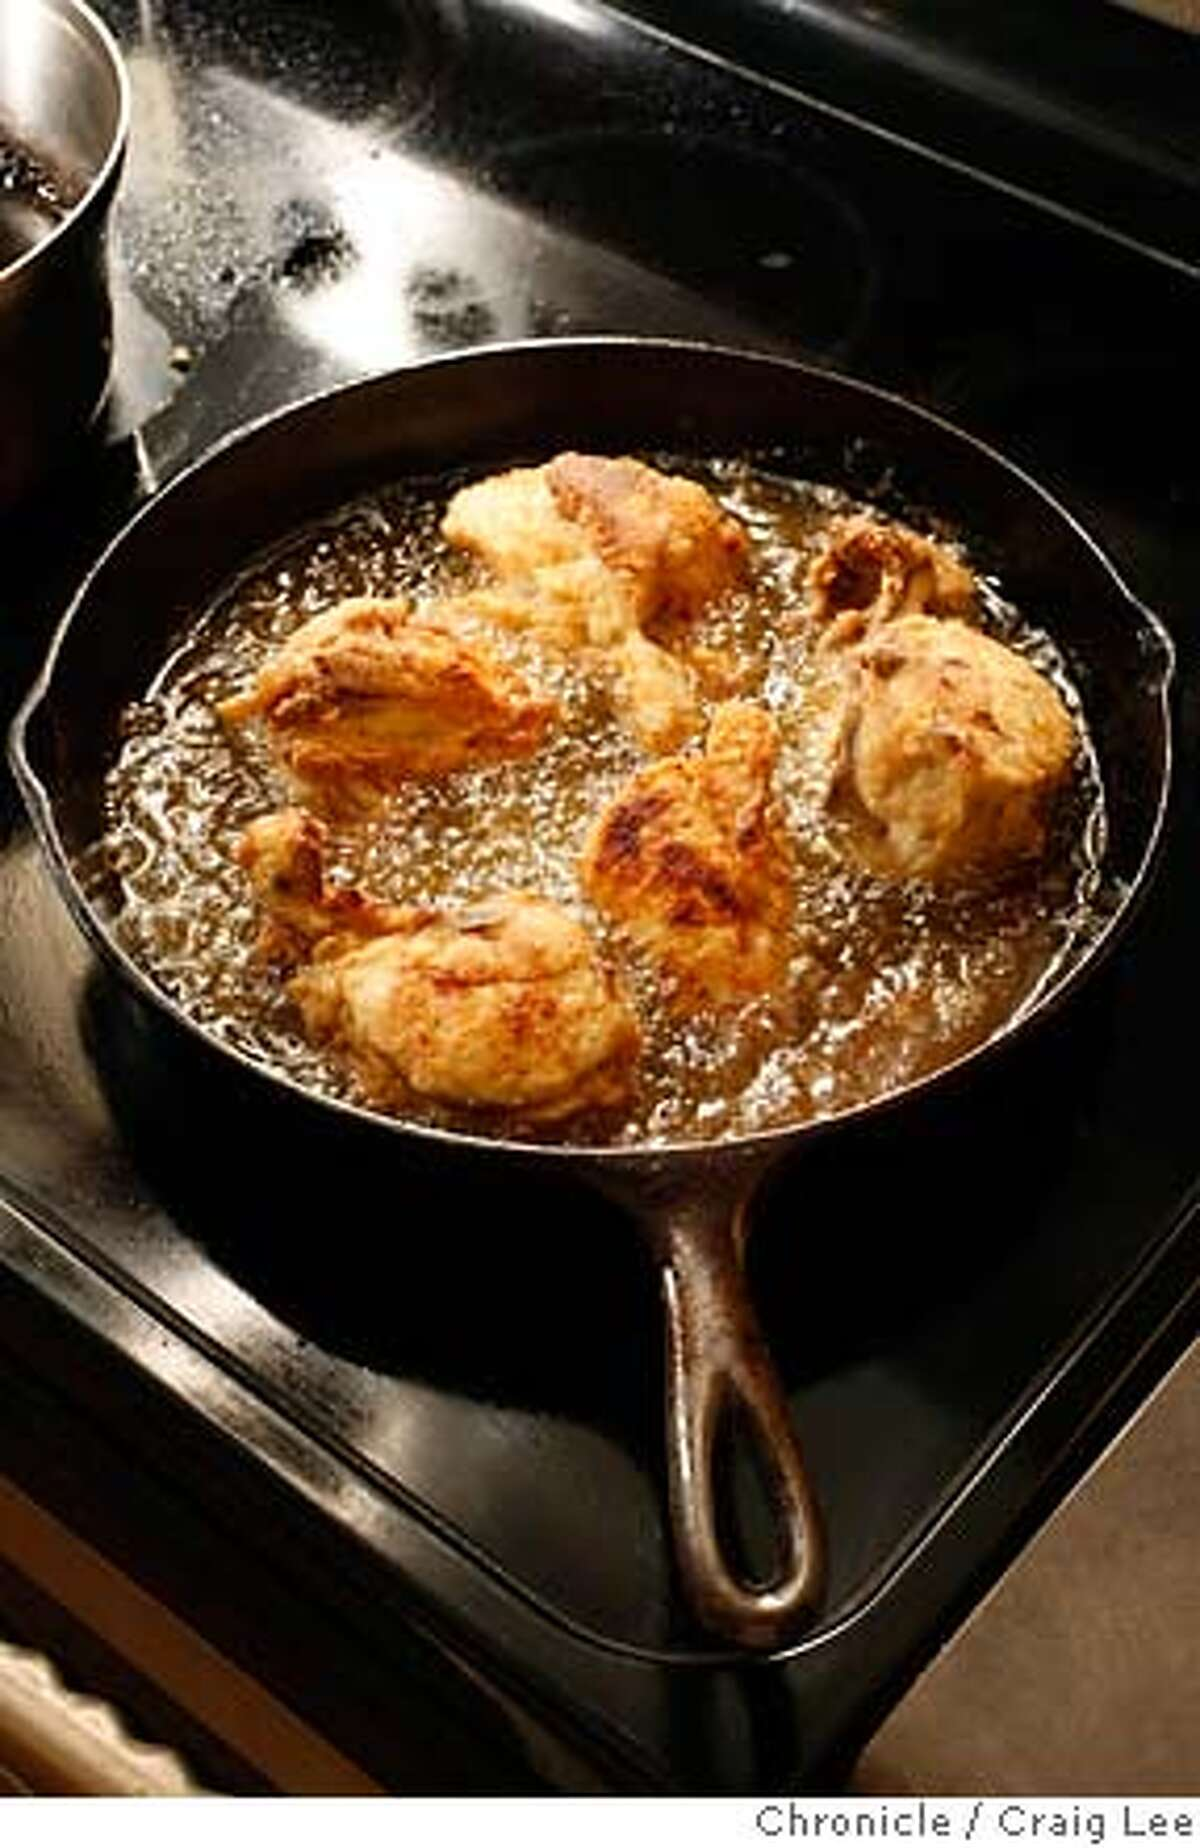 2. Don't crowd food in a pan when sauteing/frying it. When foods touch each other in a skillet, they steam rather than sear, and you won't get the crispy outer crust that tastes so good.